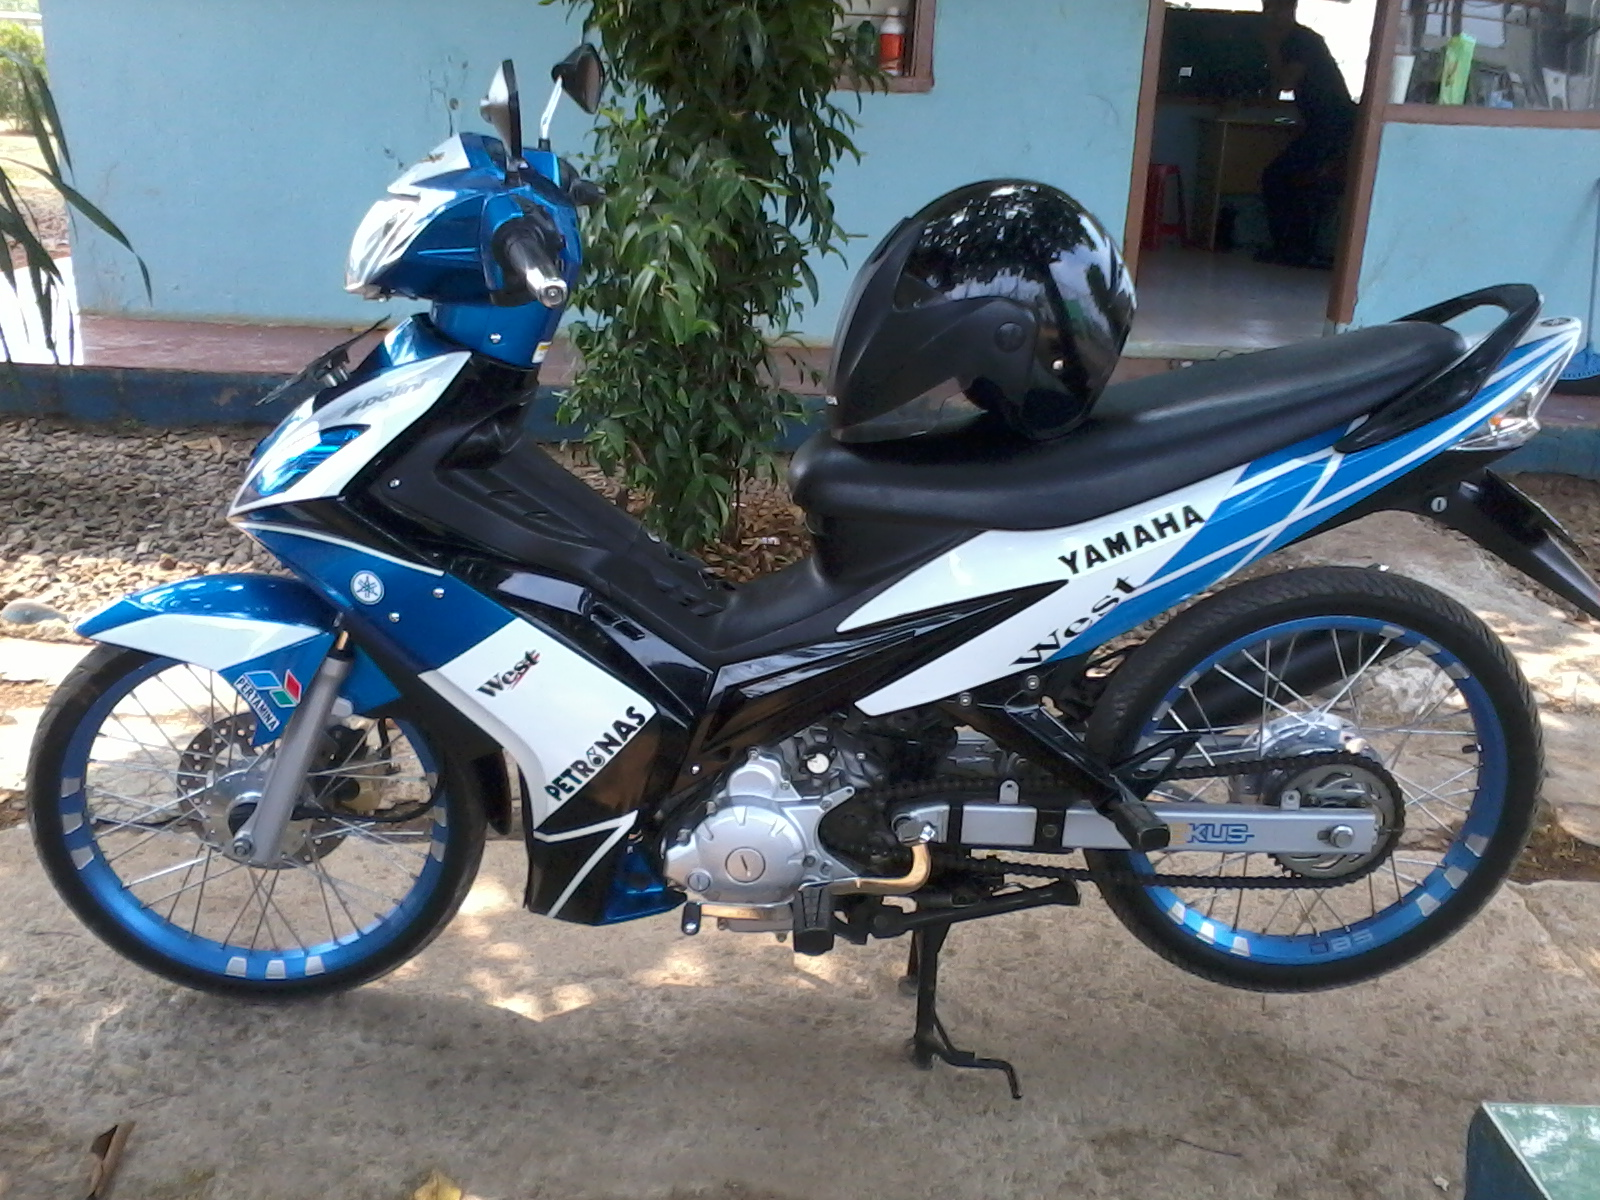 Modif Striping Jupiter Mx 2008